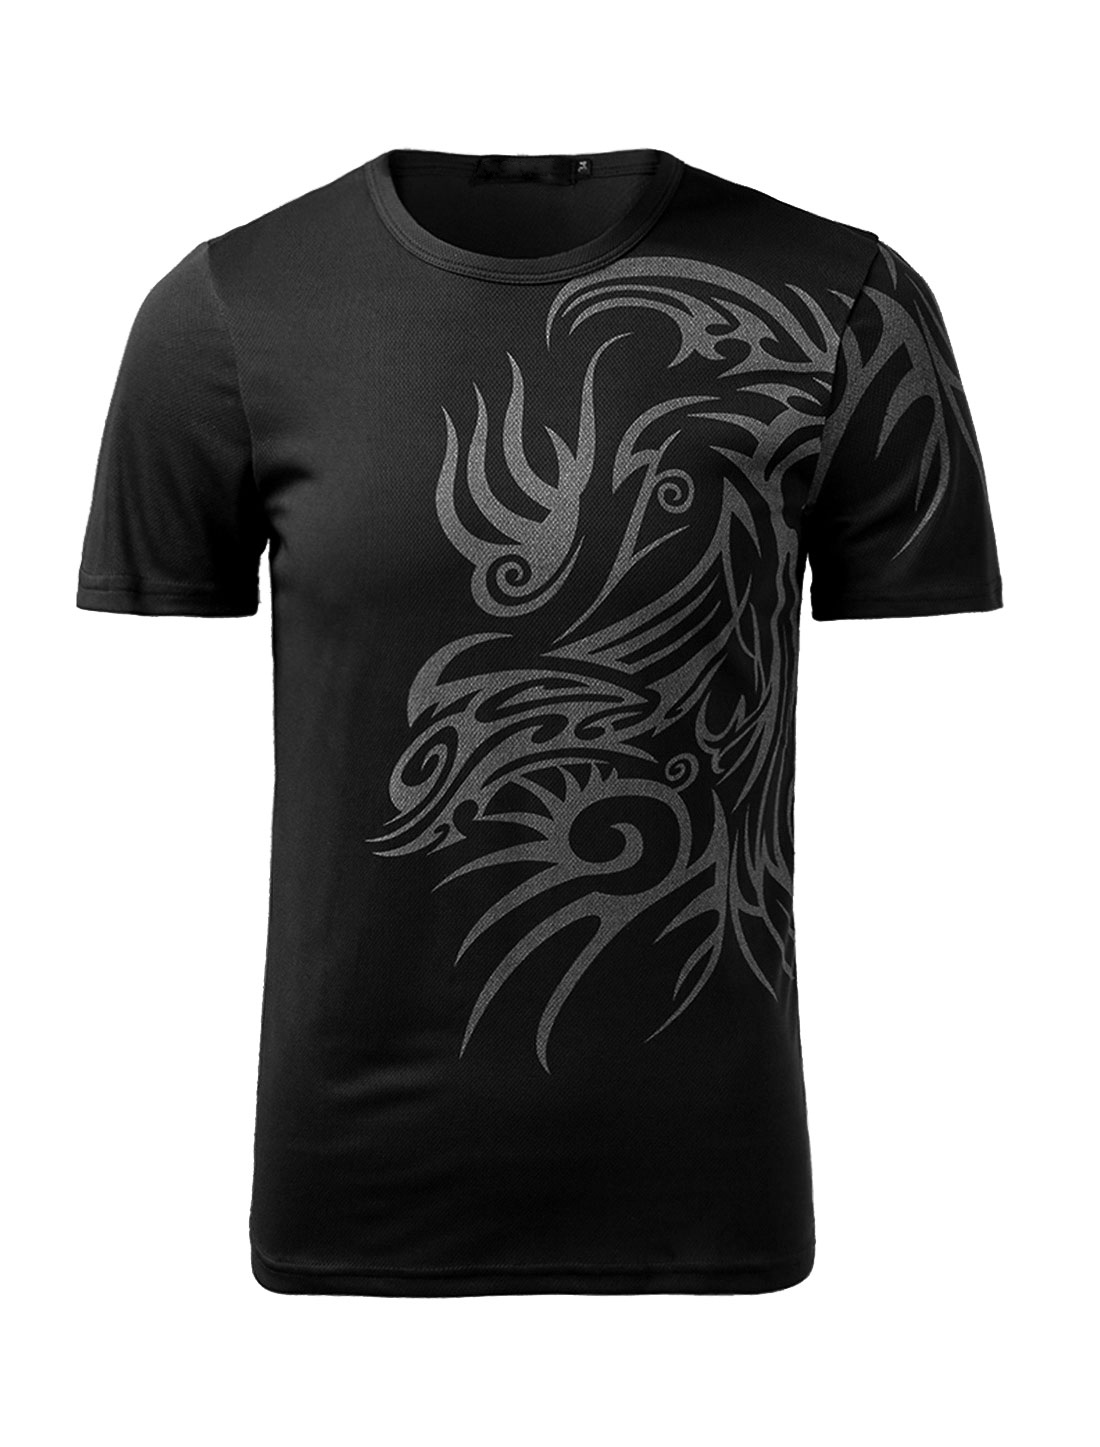 Men Round Neck Short Sleeve Slim Fit Tribal Pattern T-Shirt Black S